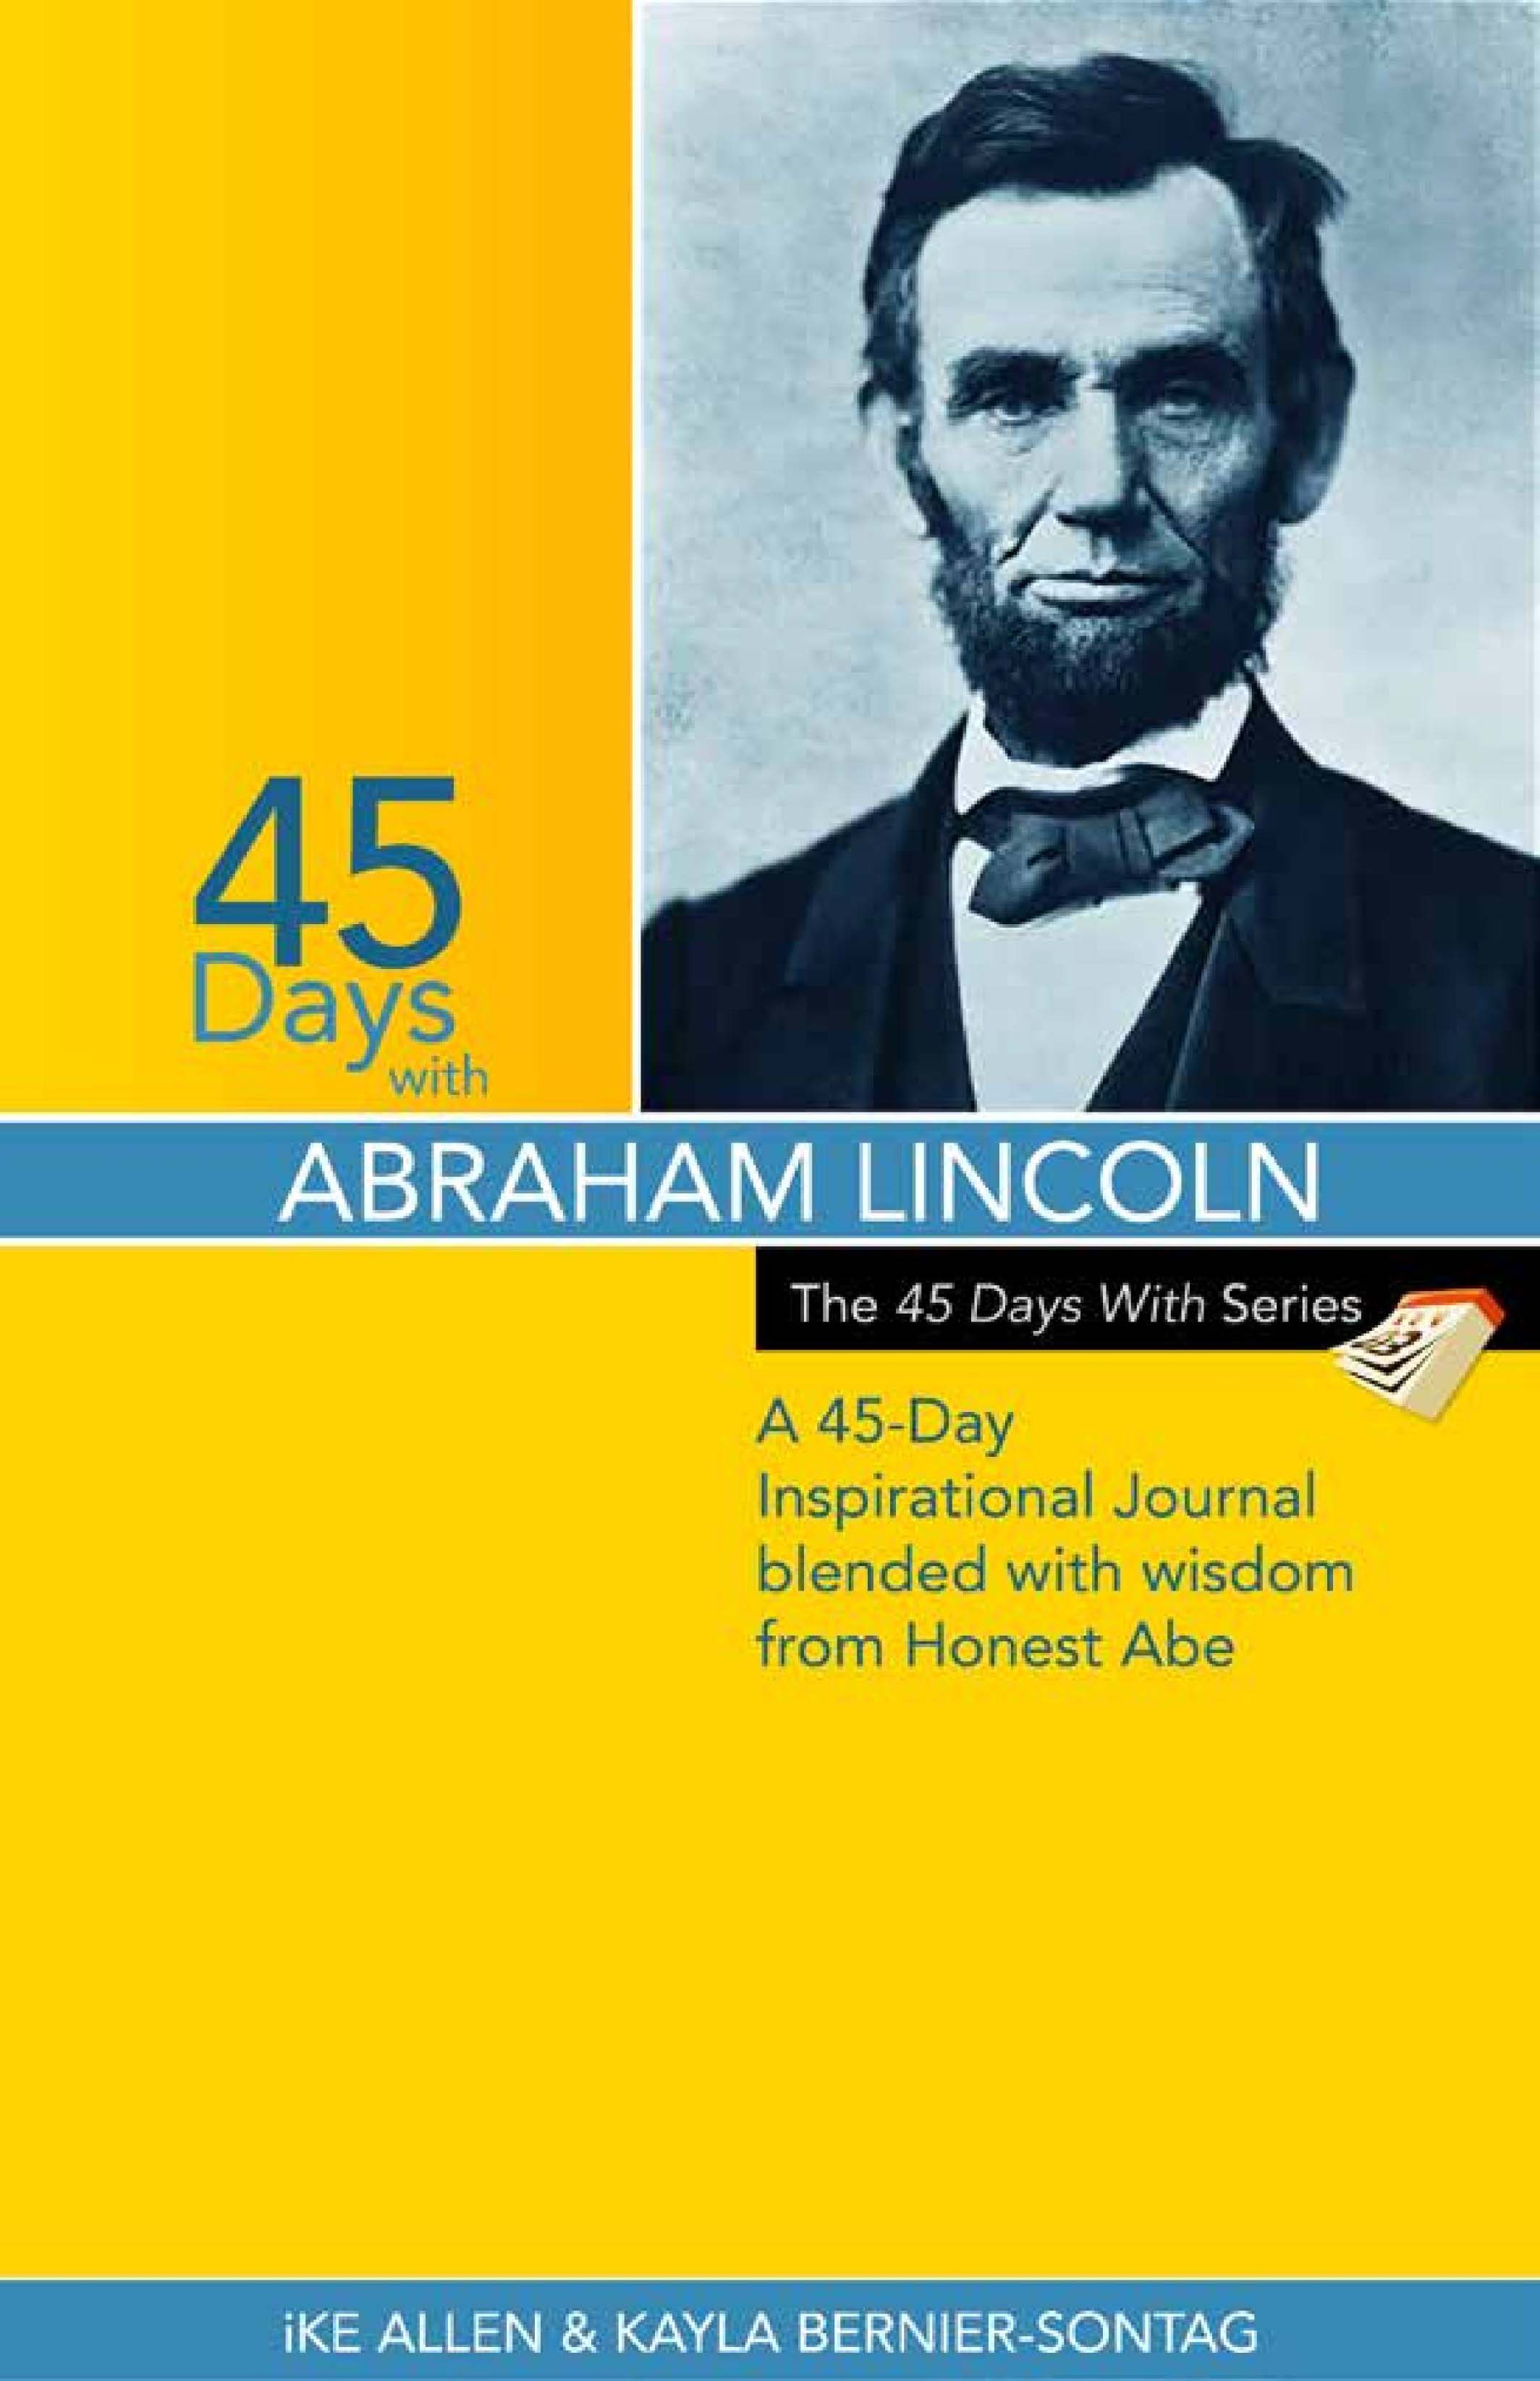 45 Days with Abraham Lincoln